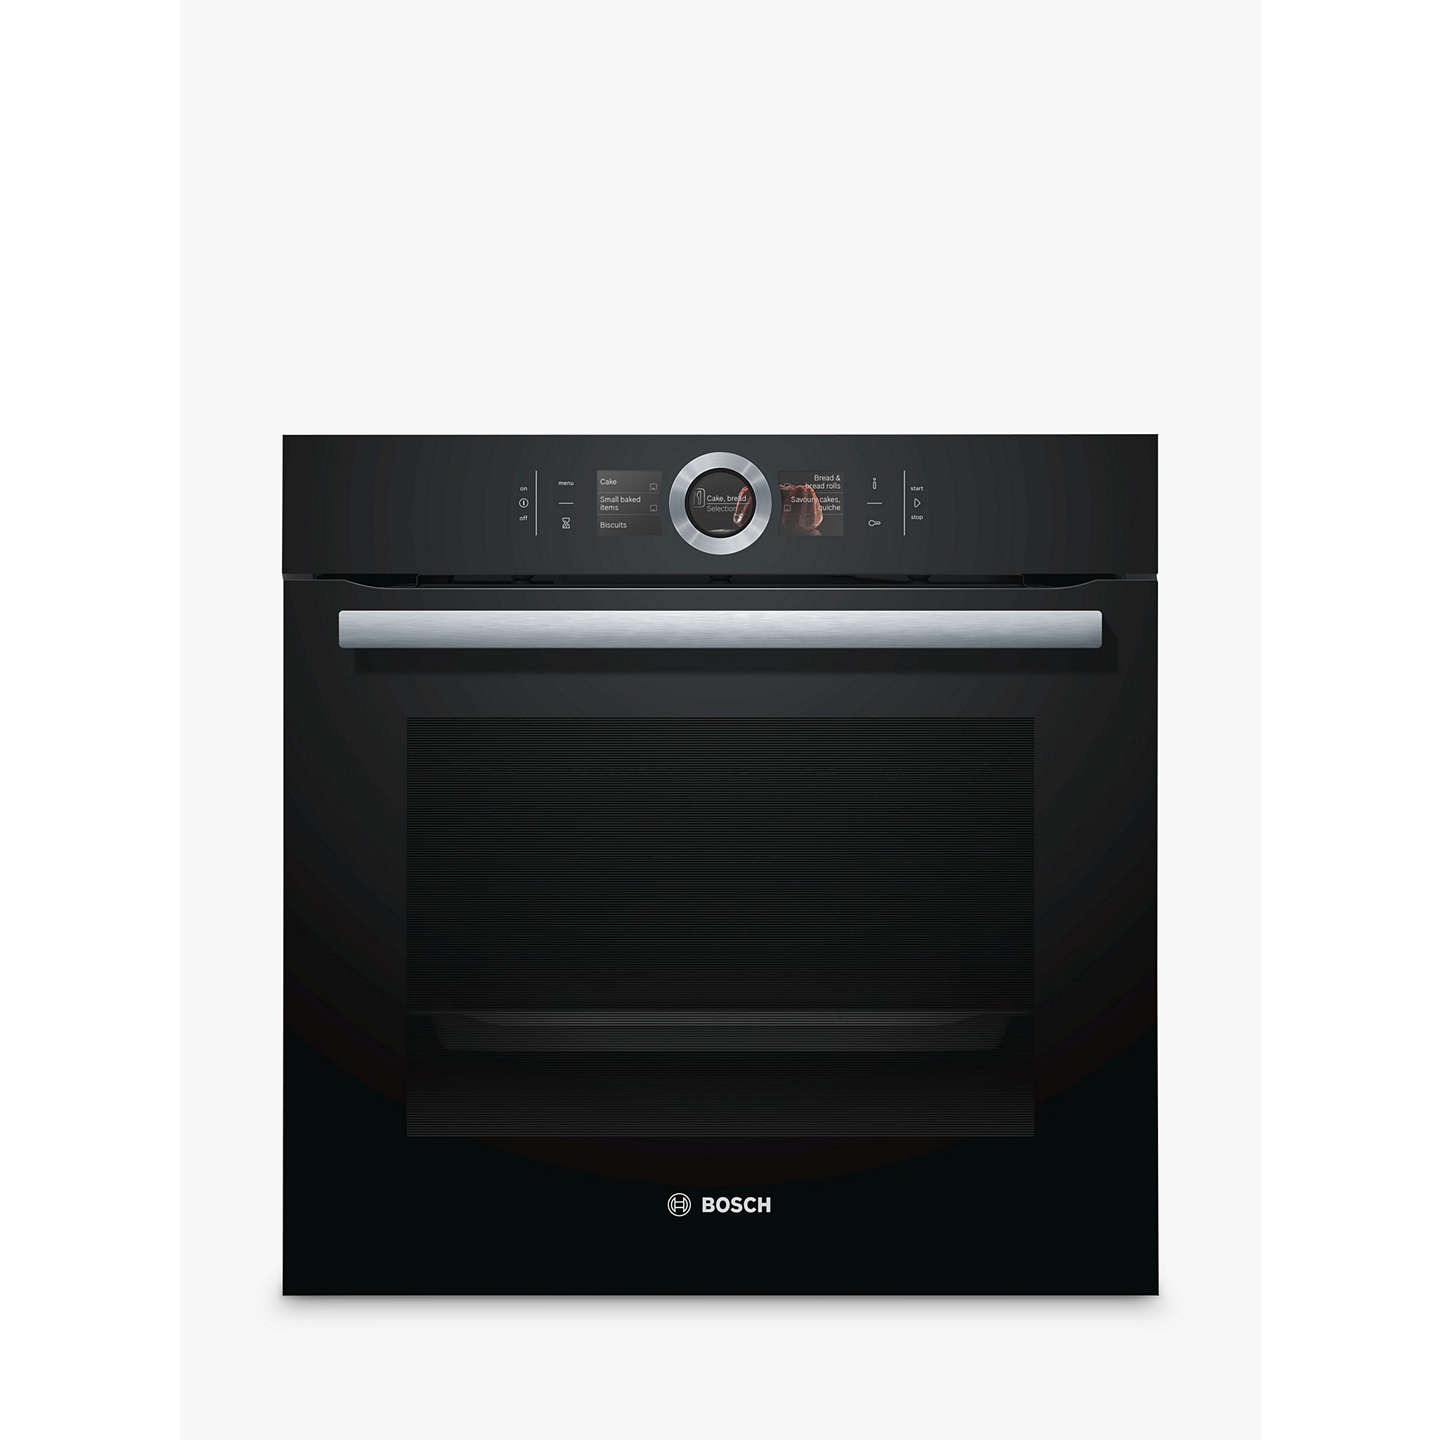 Bosch Hbg6764b6b Built In Single Oven With Home Connect Black Online At Johnlewis